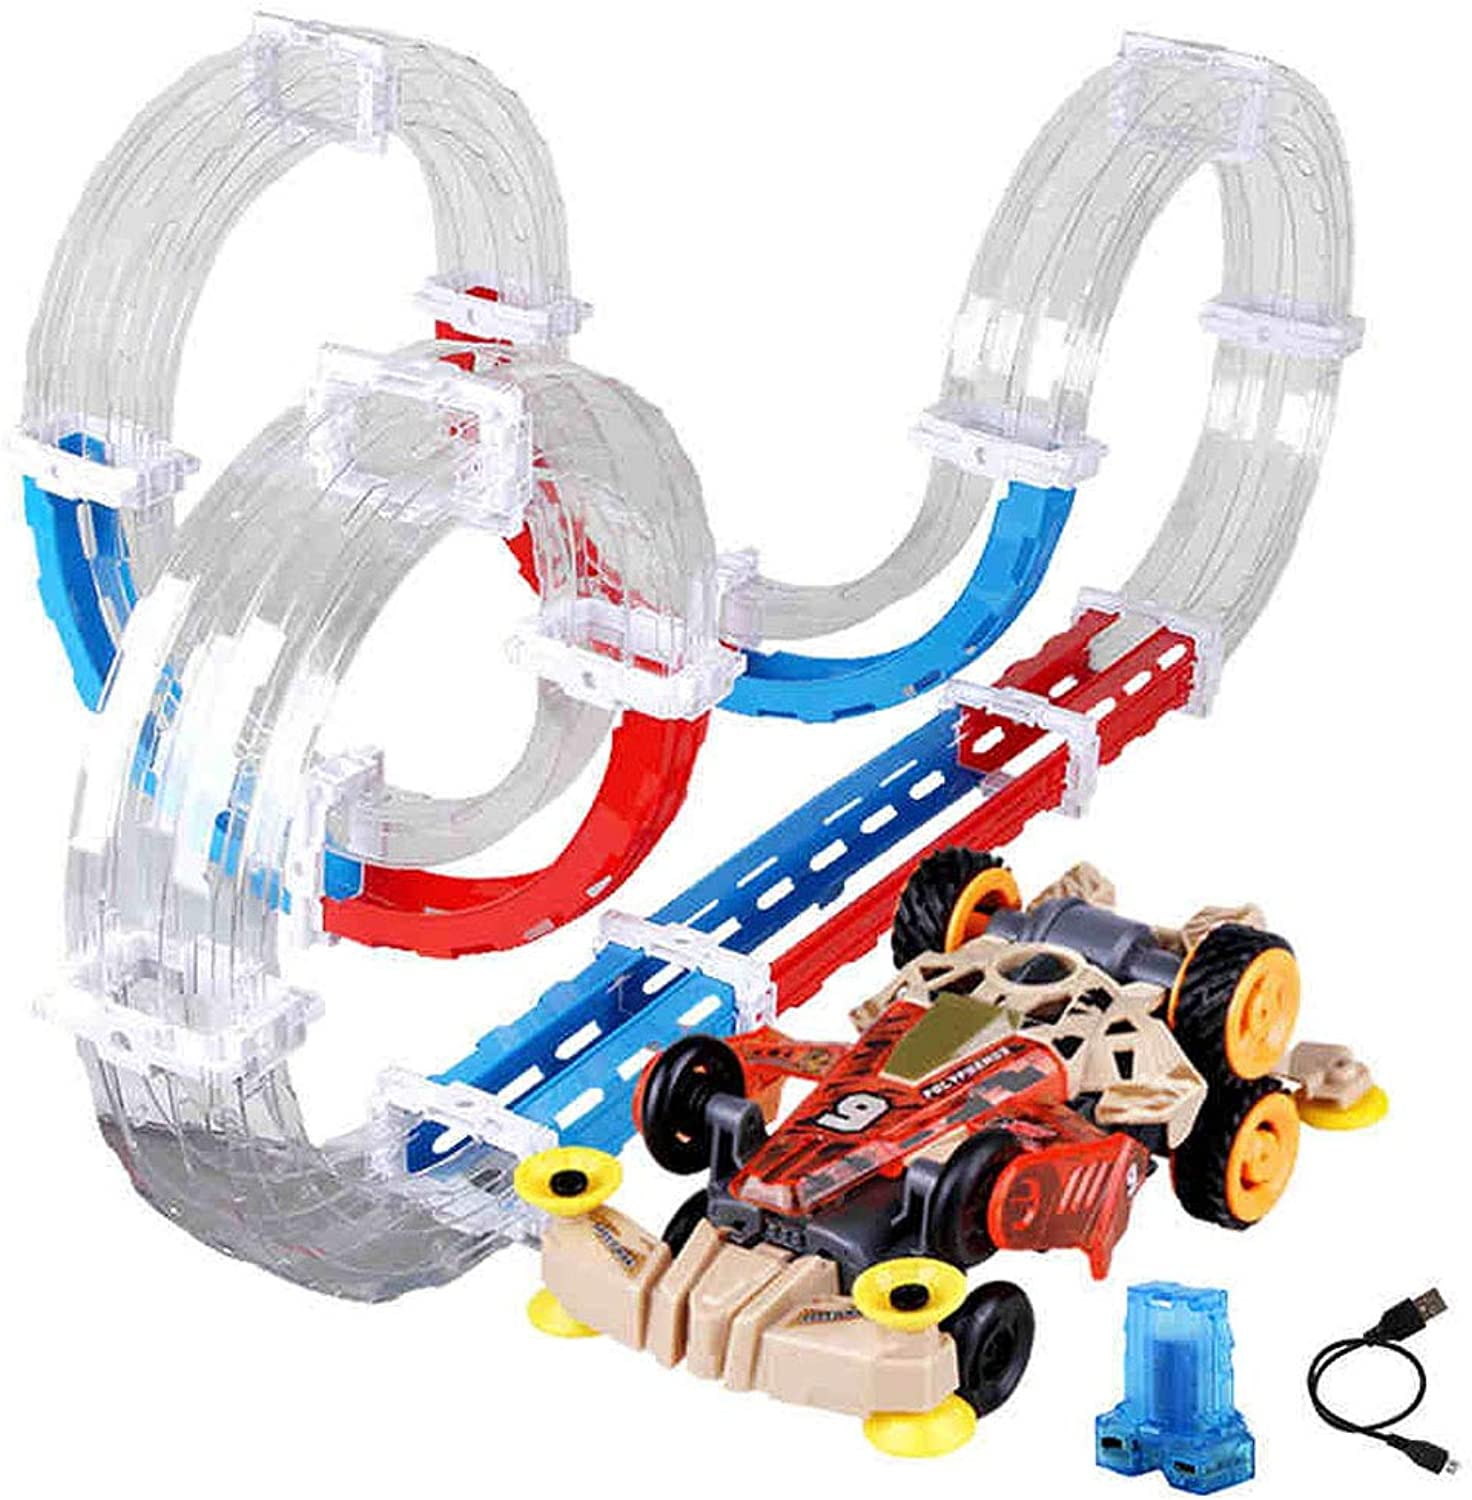 Track Racing, Assembling Racing Track Track ,4WD, Mini Racing Toy, Assembled Track Racing